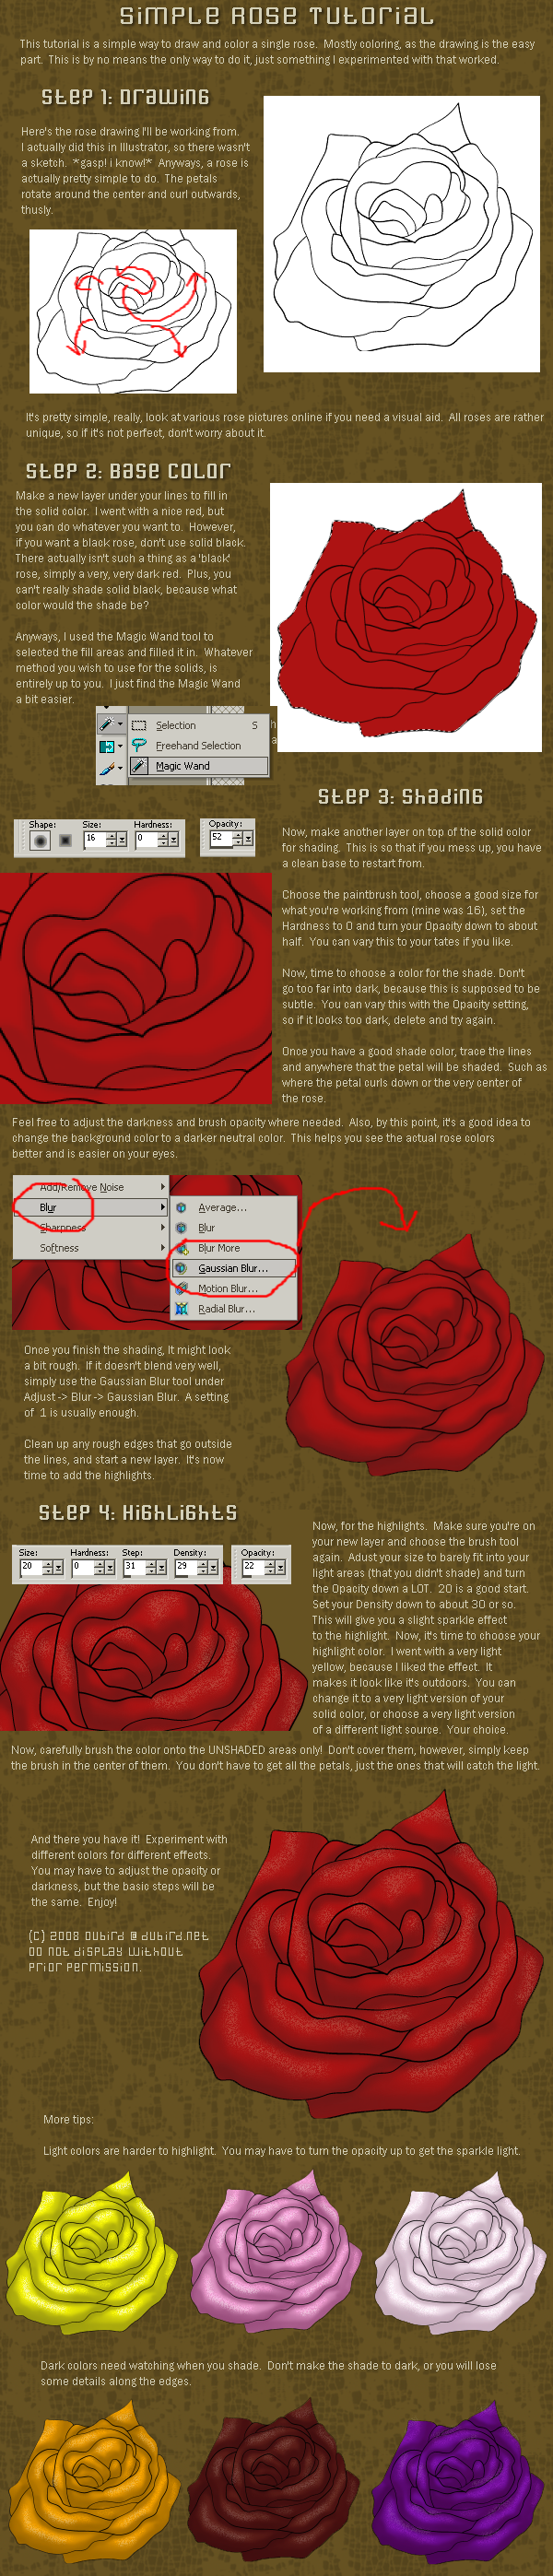 Simple Rose Tutorial by dubird